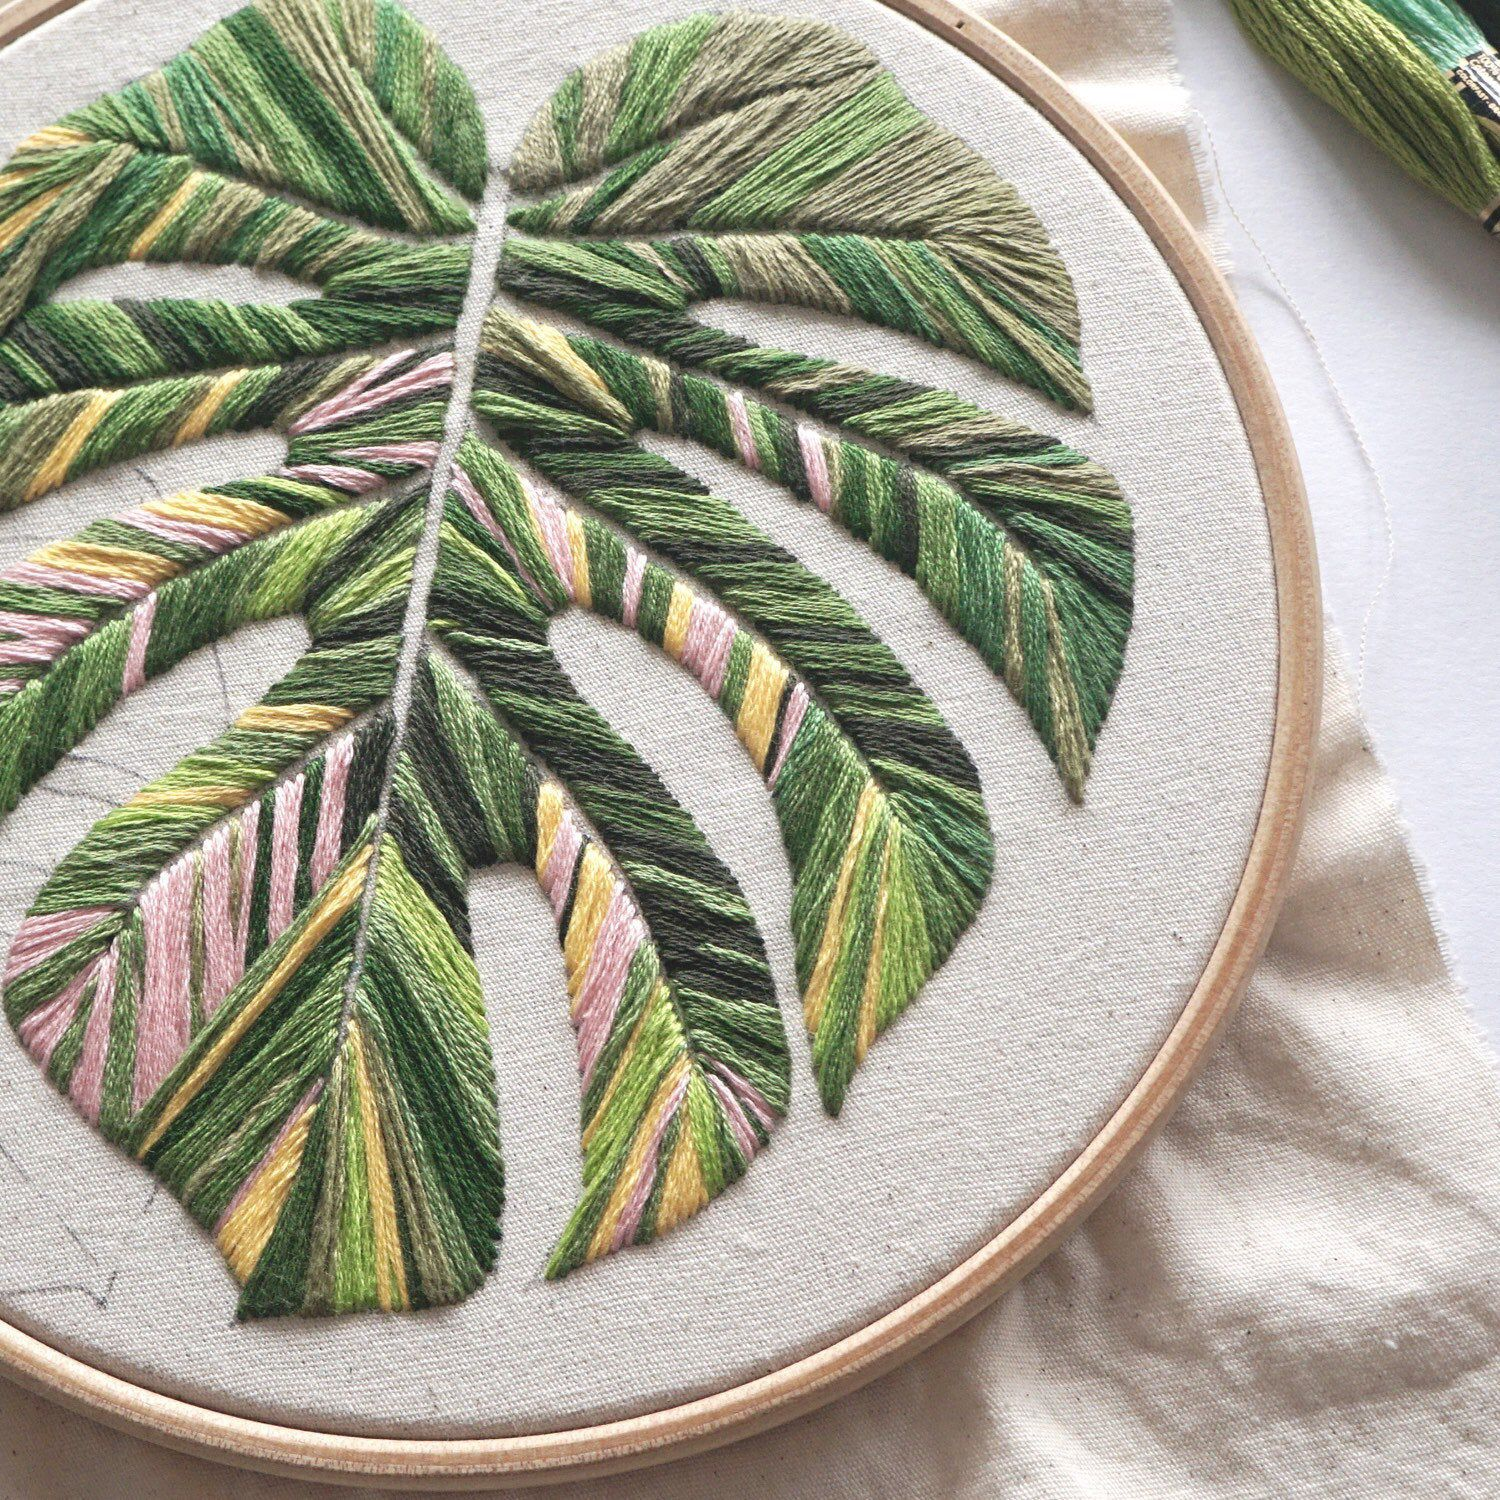 Embroidery Pattern - Monstera Leaves, PDF Embroidery Design, Beginner Embroidery Pattern, DIY Embroidery, Digital Embroidery Pattern